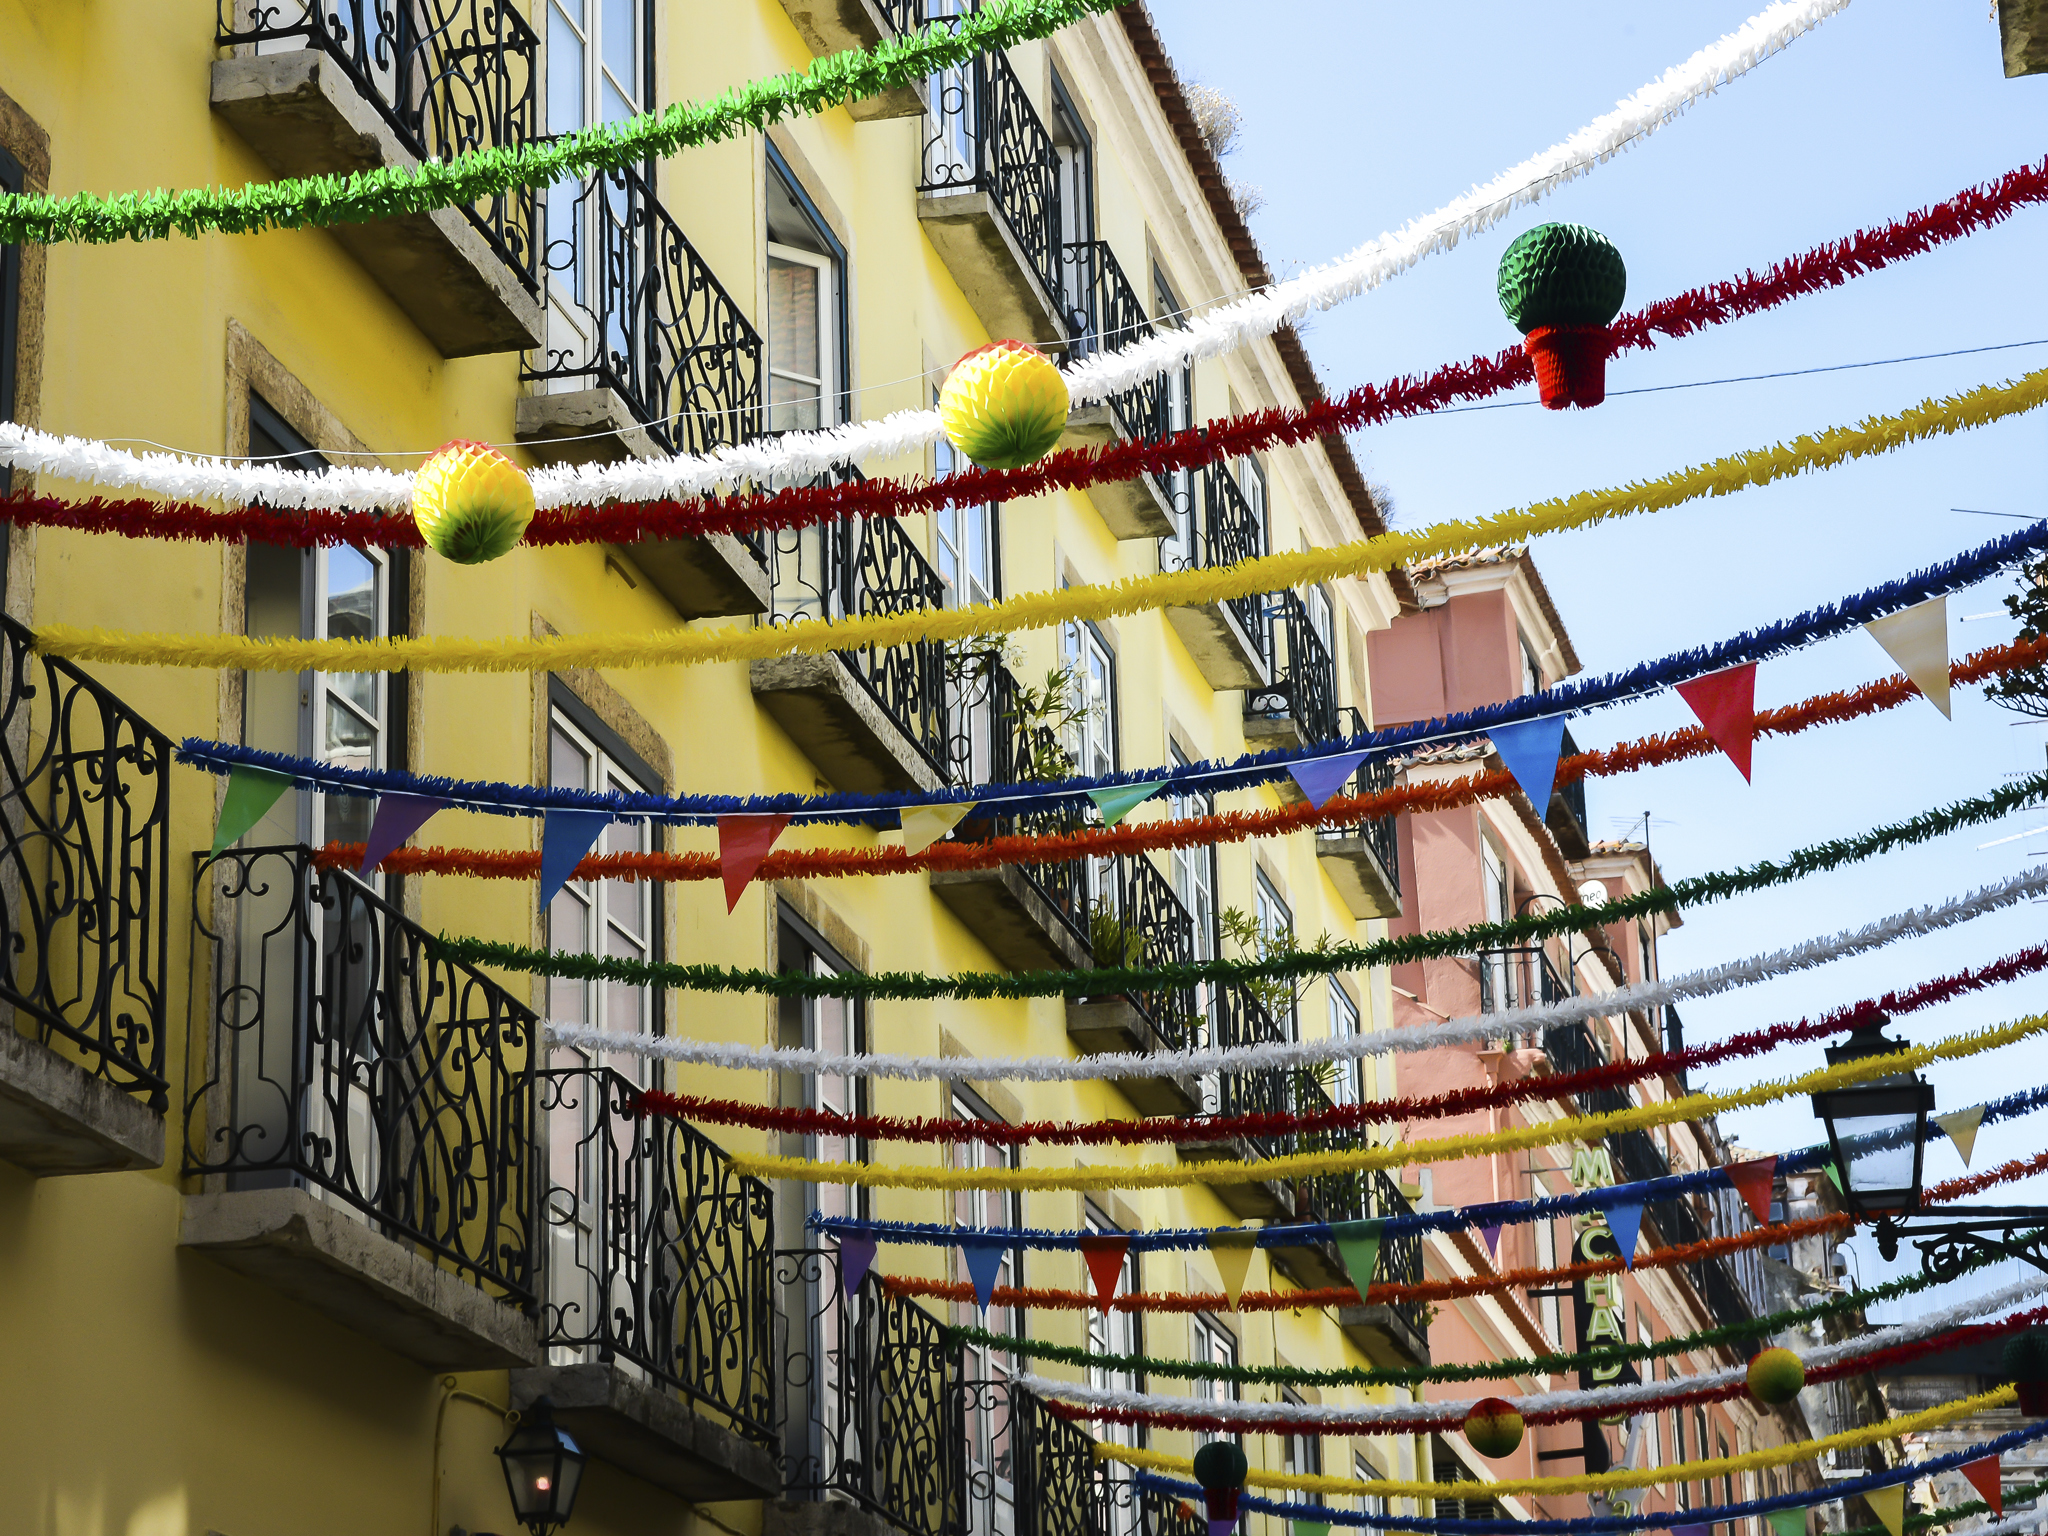 The events in Lisbon you can't miss this year